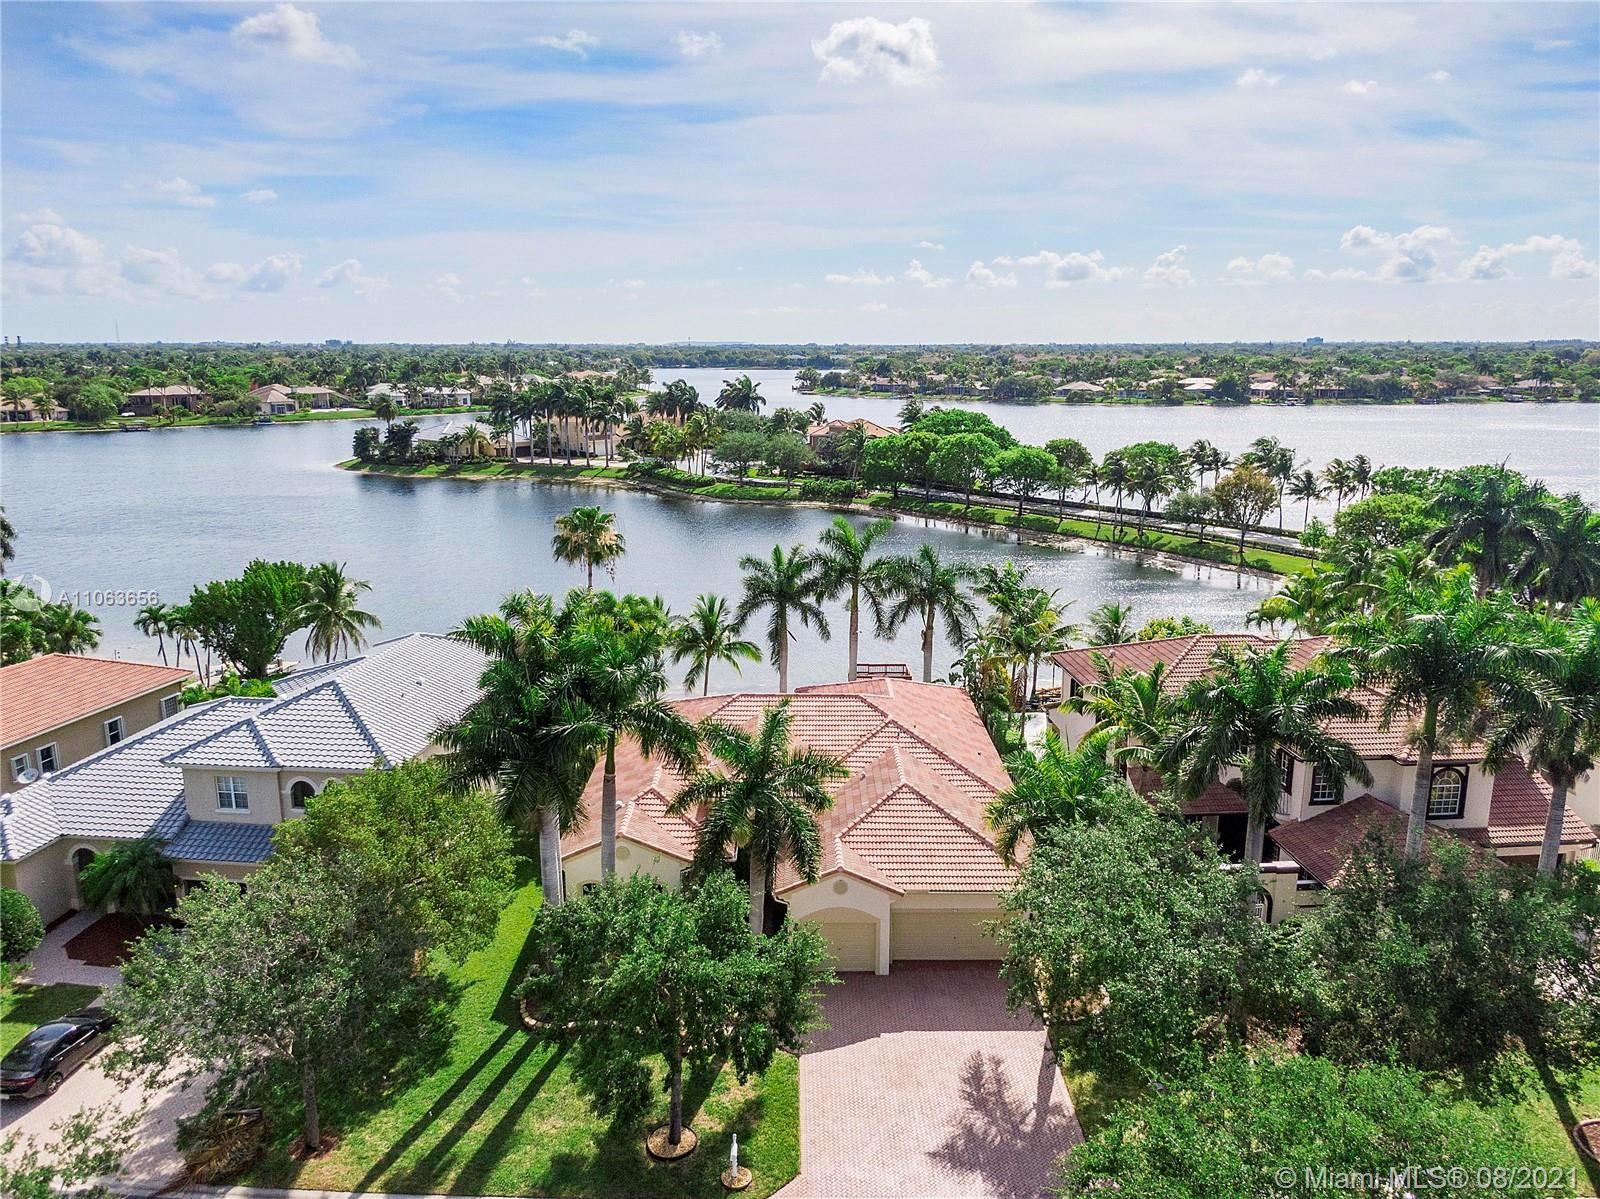 729 NW 123rd Dr, Coral Springs, FL 33071 - #: A11063656